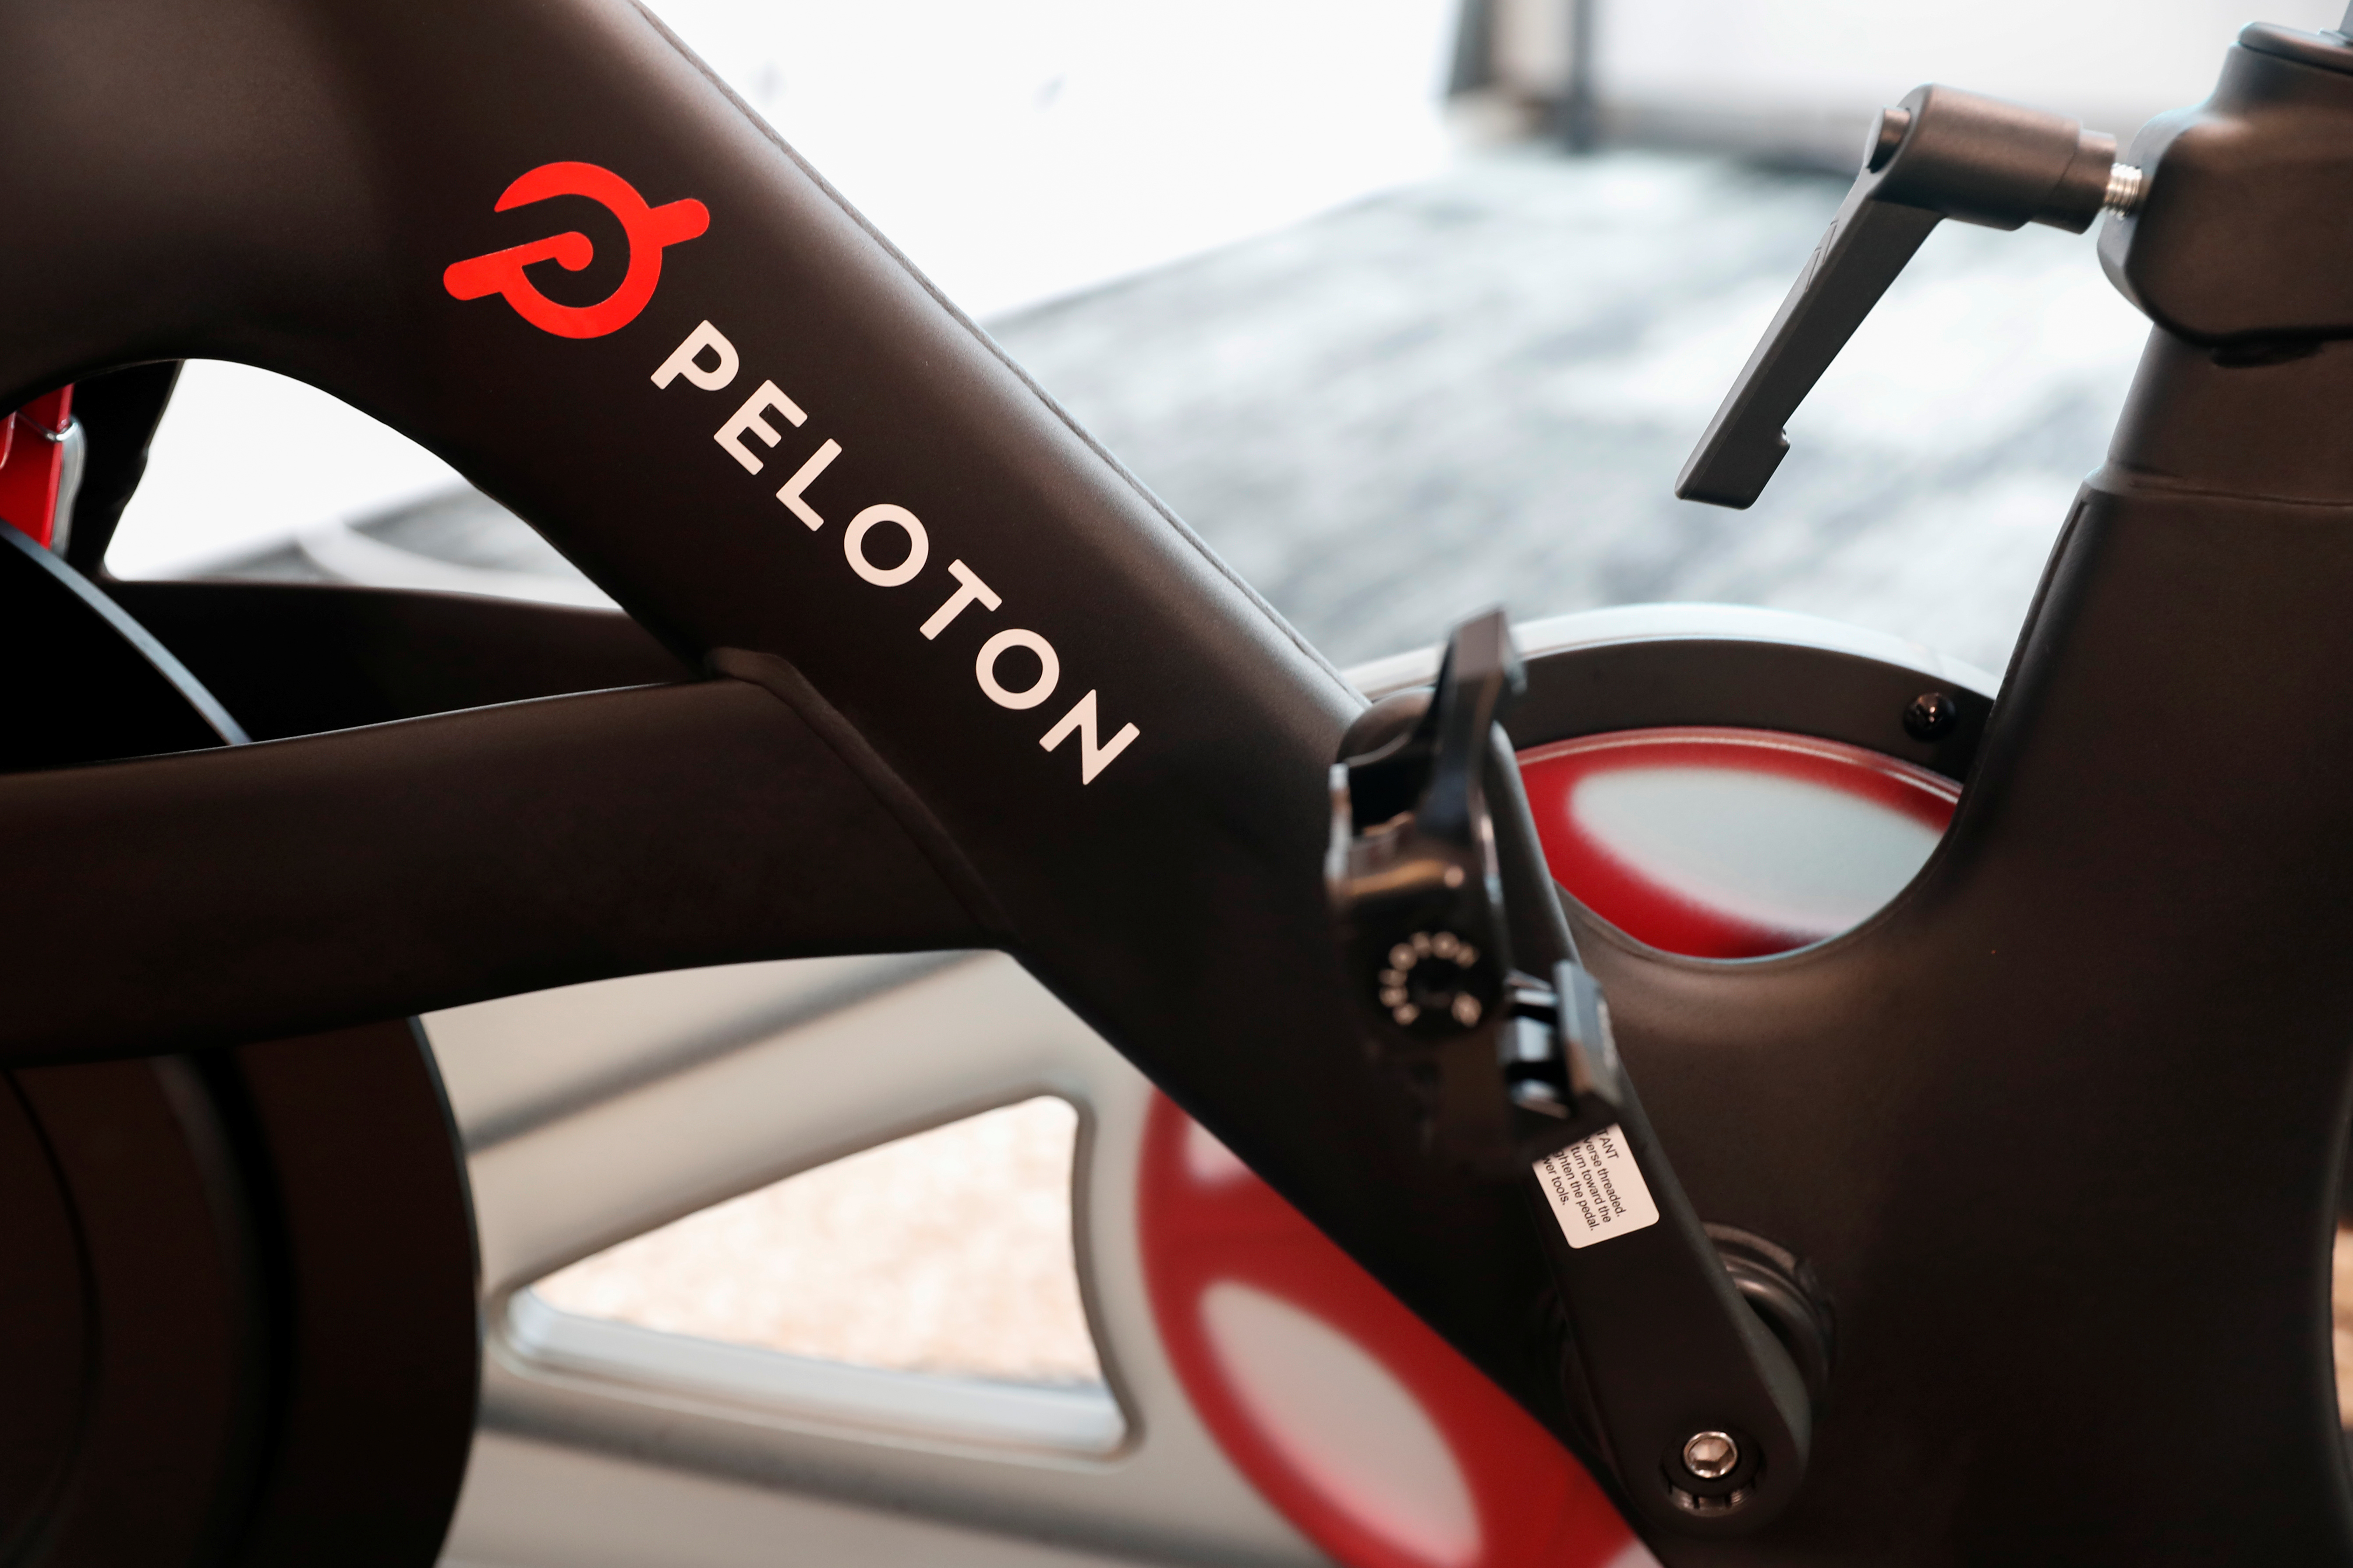 A Peloton exercise bike is seen at the Nasdaq Market site in New York City, September 26, 2019. REUTERS/Shannon Stapleton